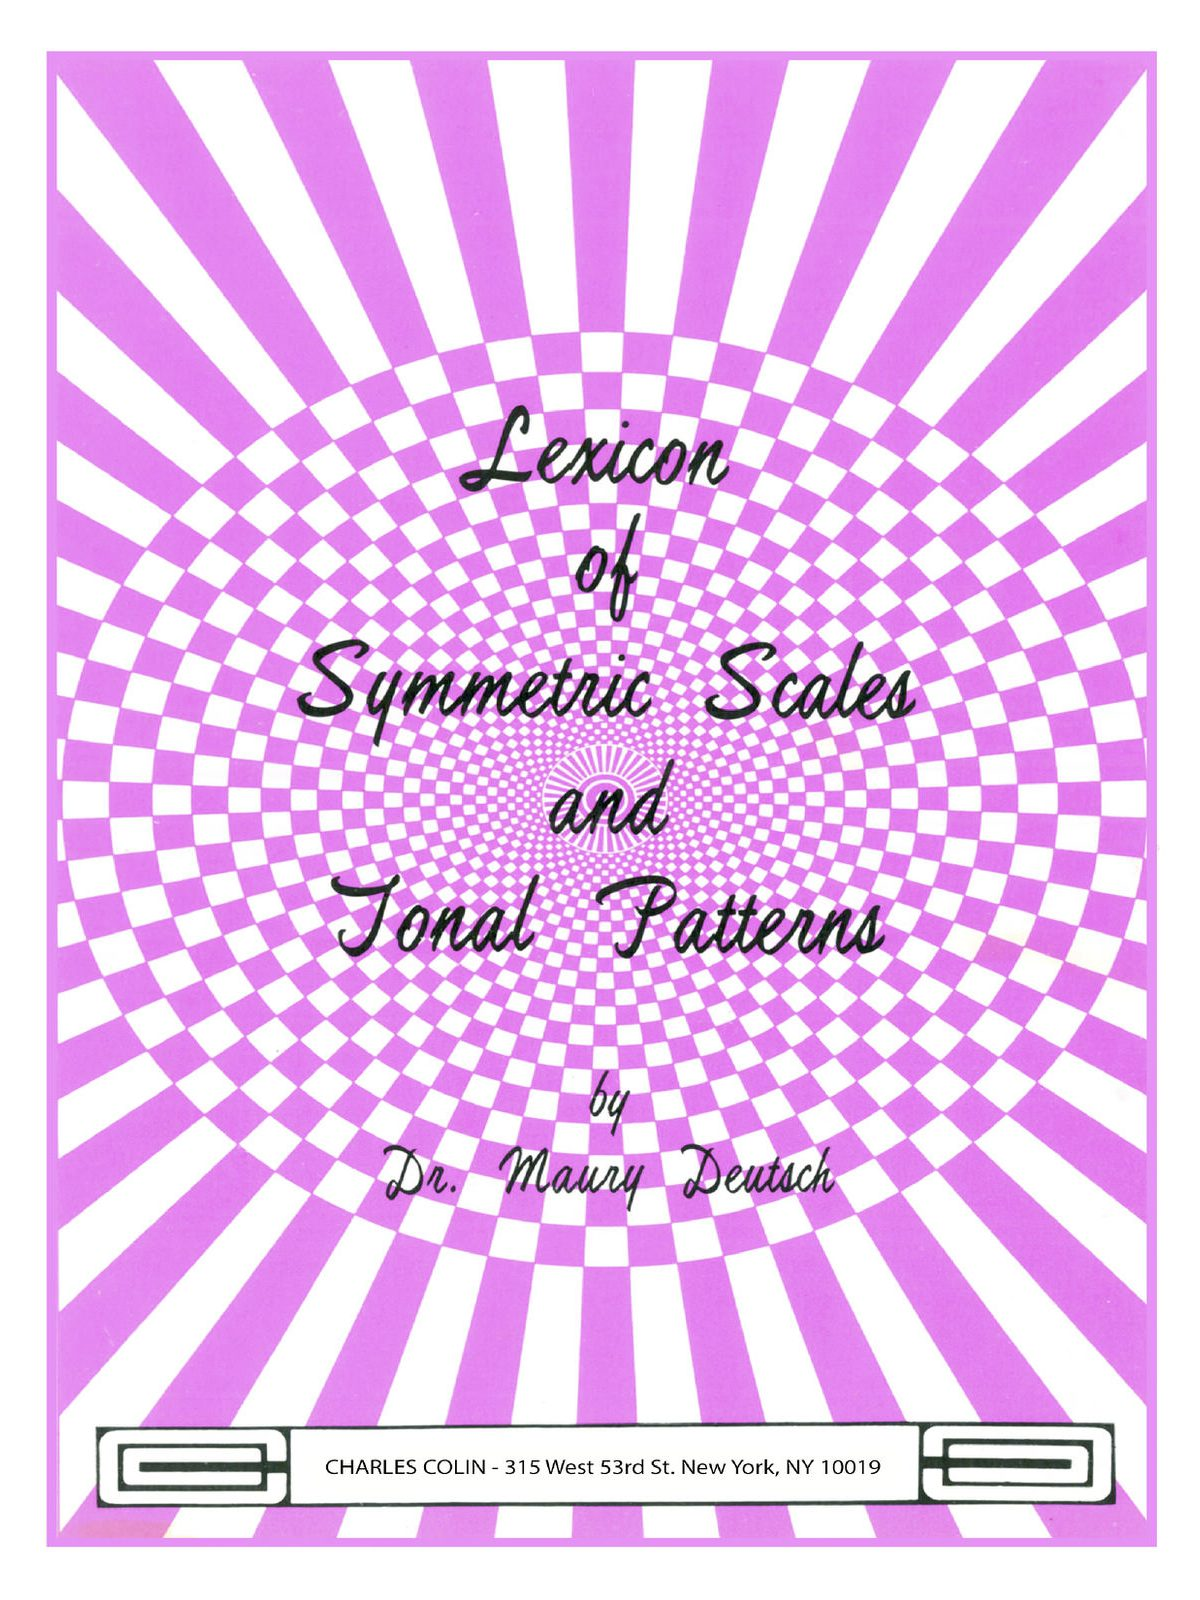 Deutsch, Lexicon of Symmetric Scales and Tonal Patterns